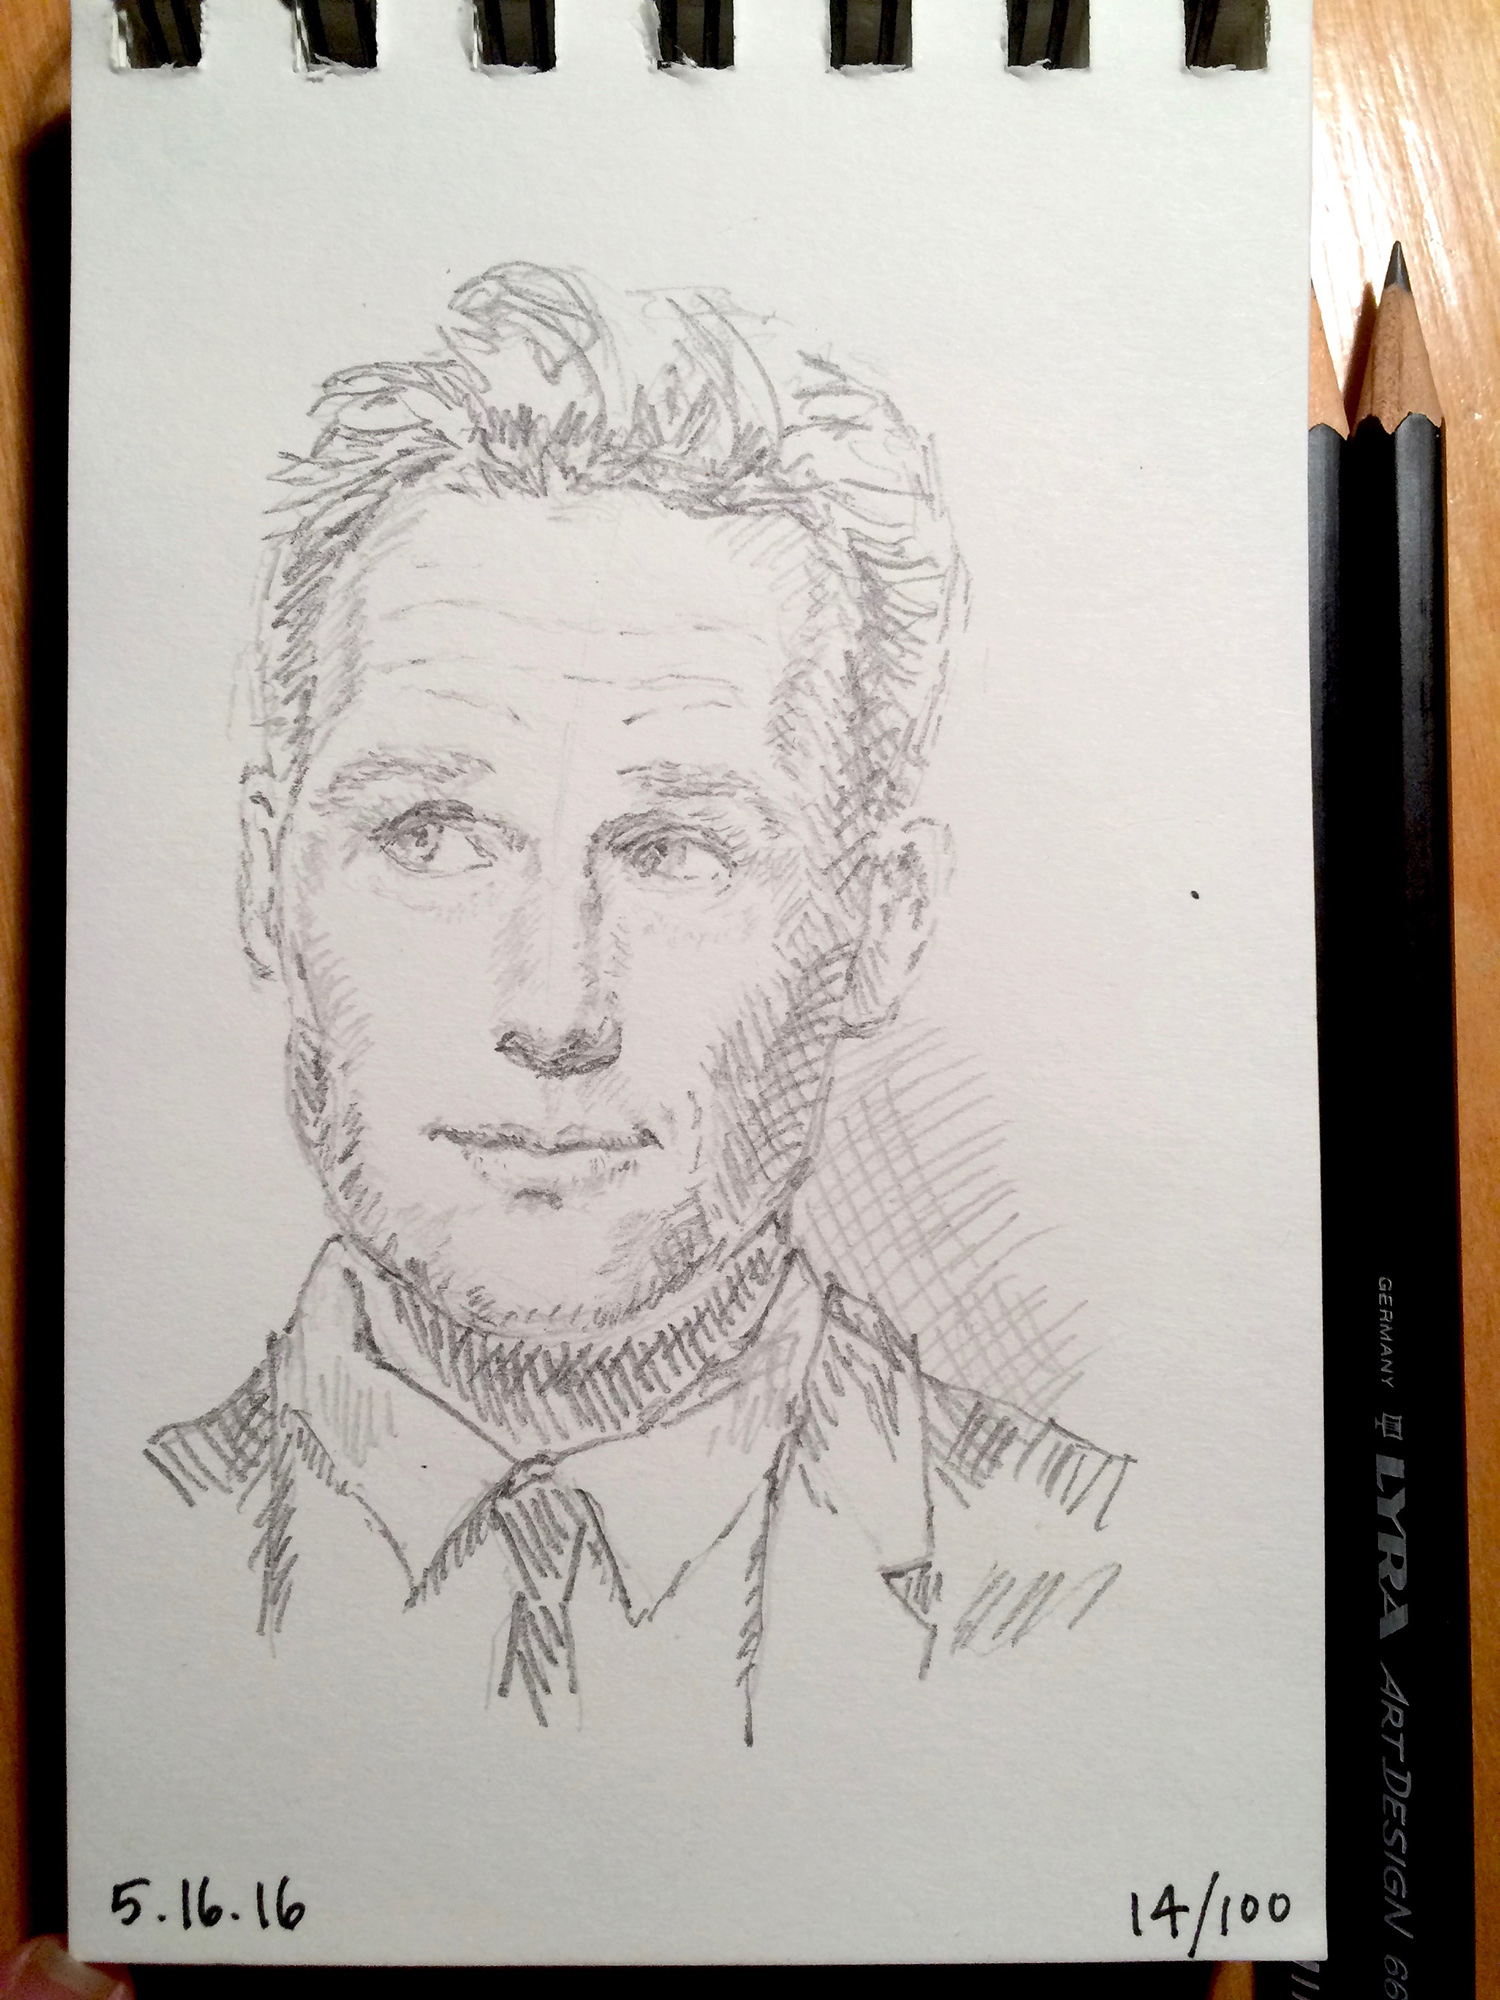 pencil sketch, portrait of - almost - Paul Rudd, by Jennifer Koskinen